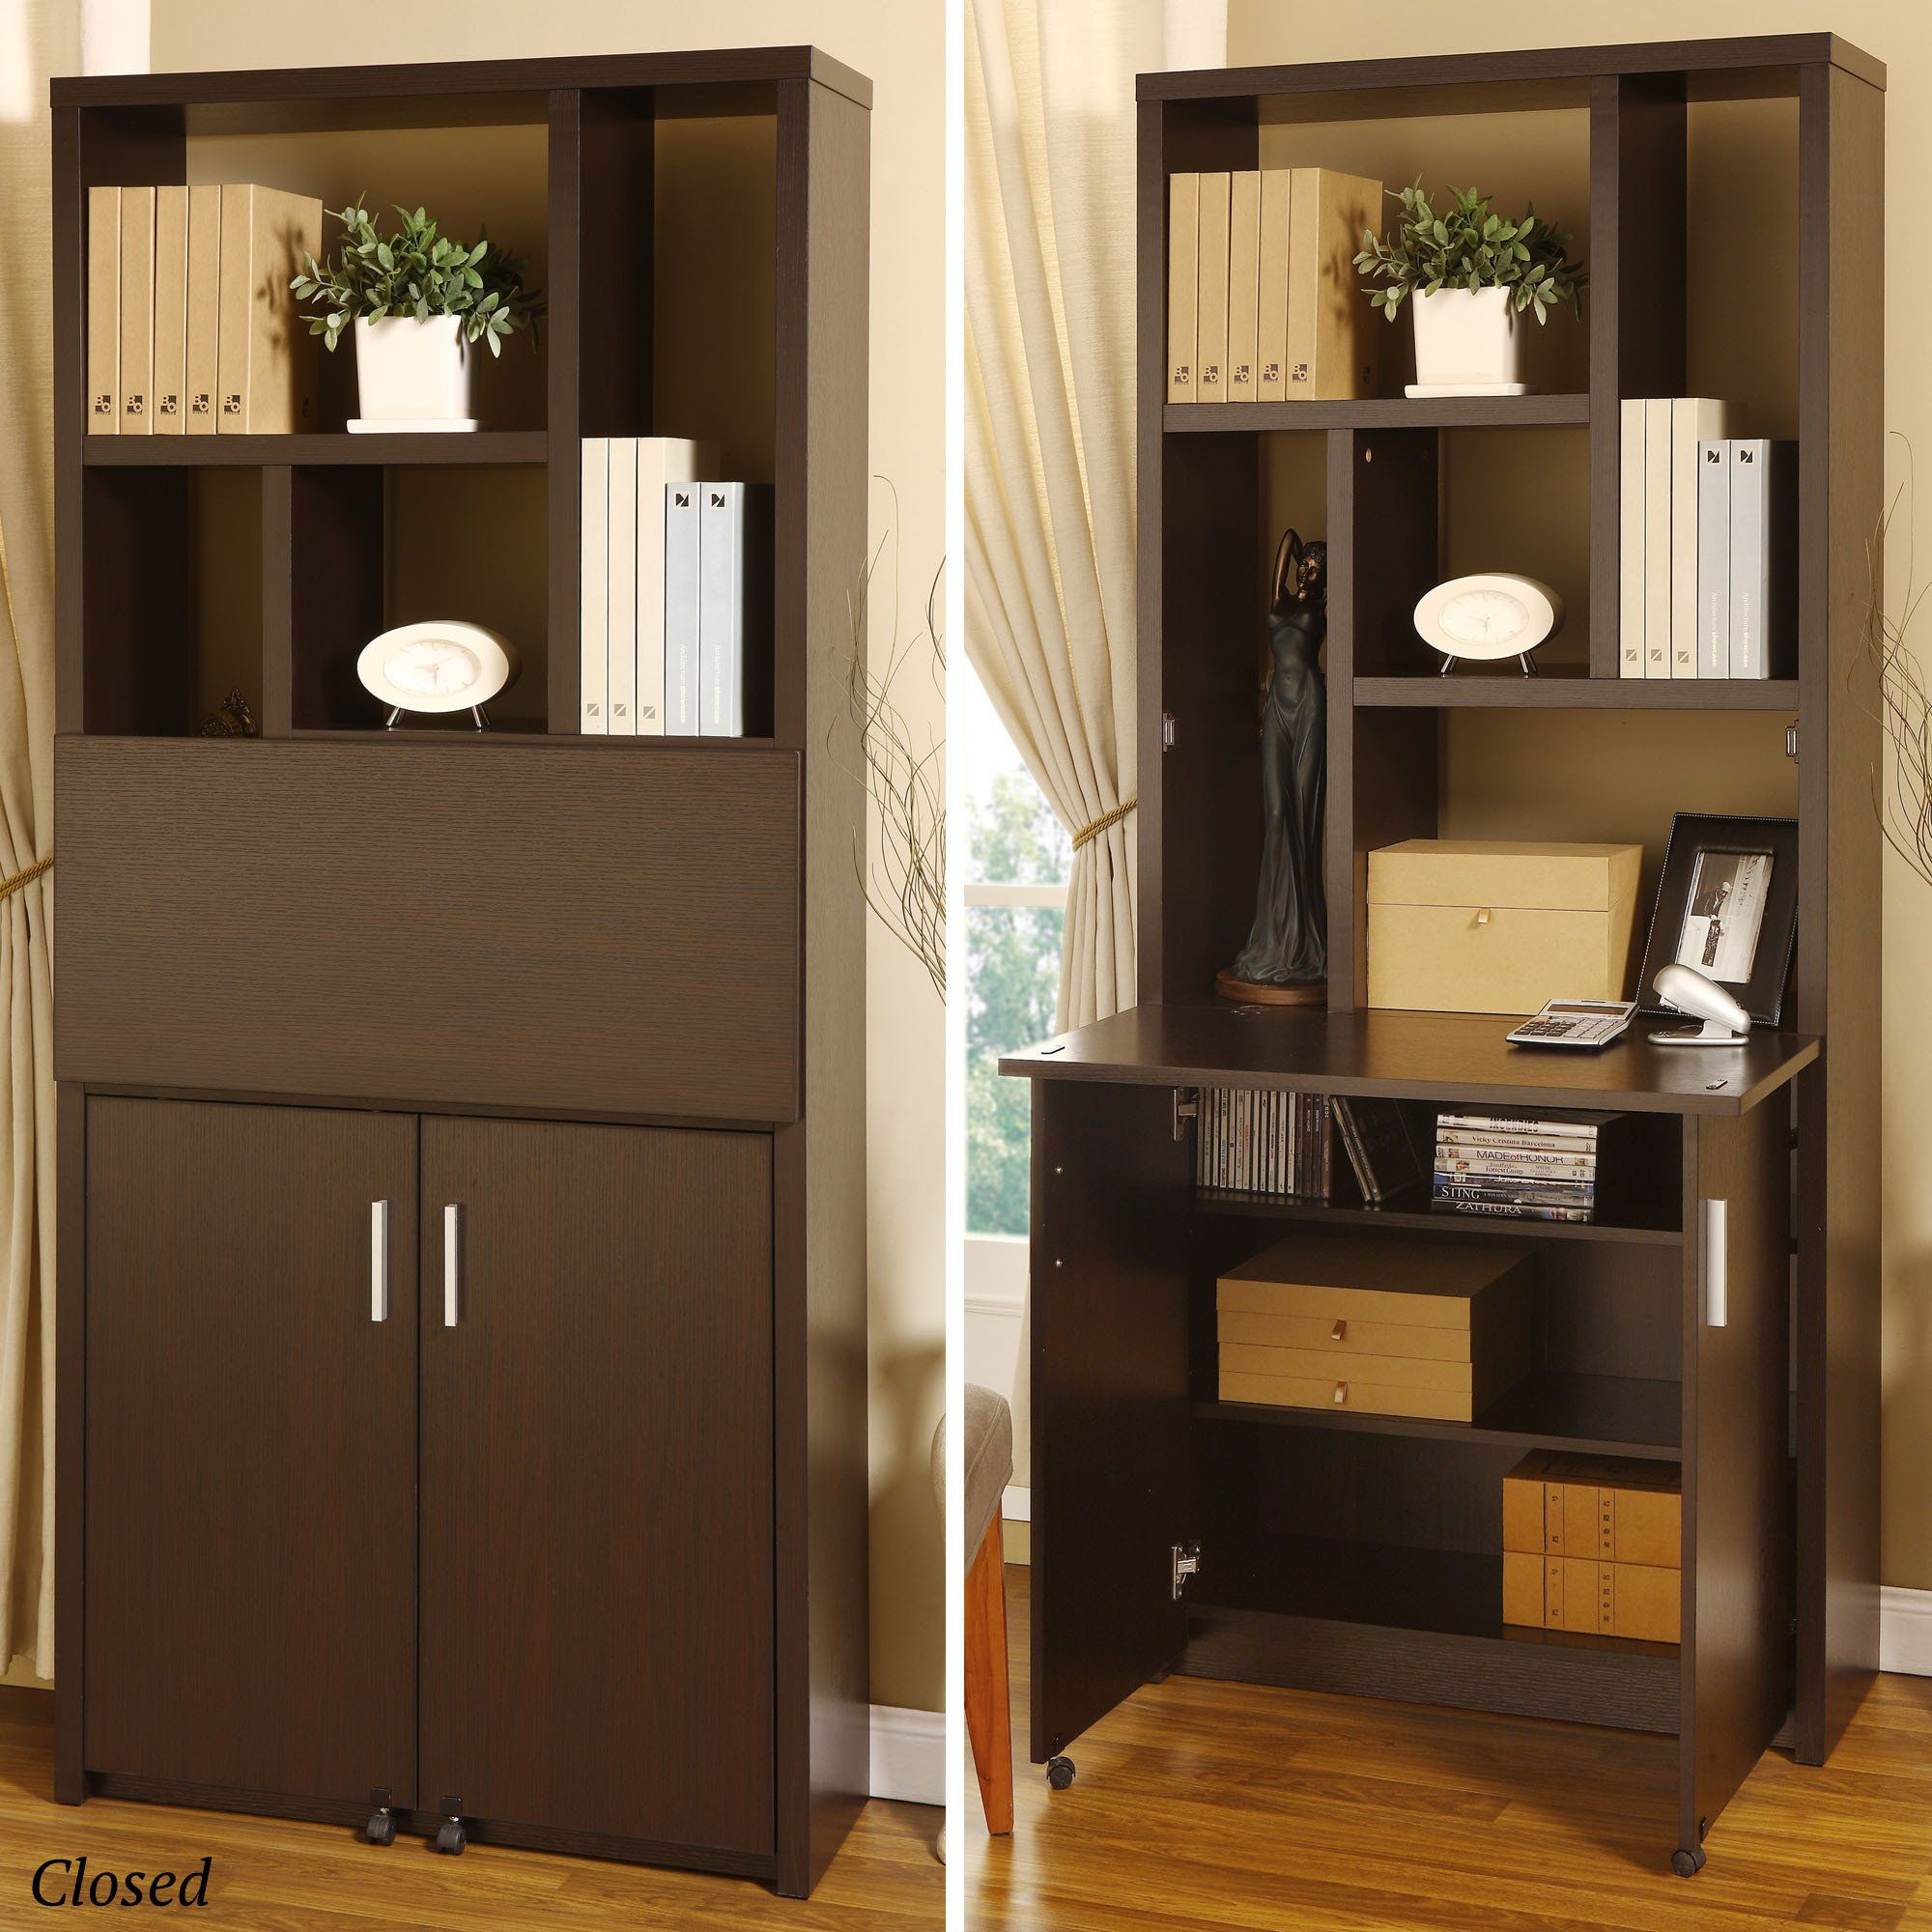 This Would Be A Great Idea For Living Room Cabinets Jens Bookshelf Office StorageDesk